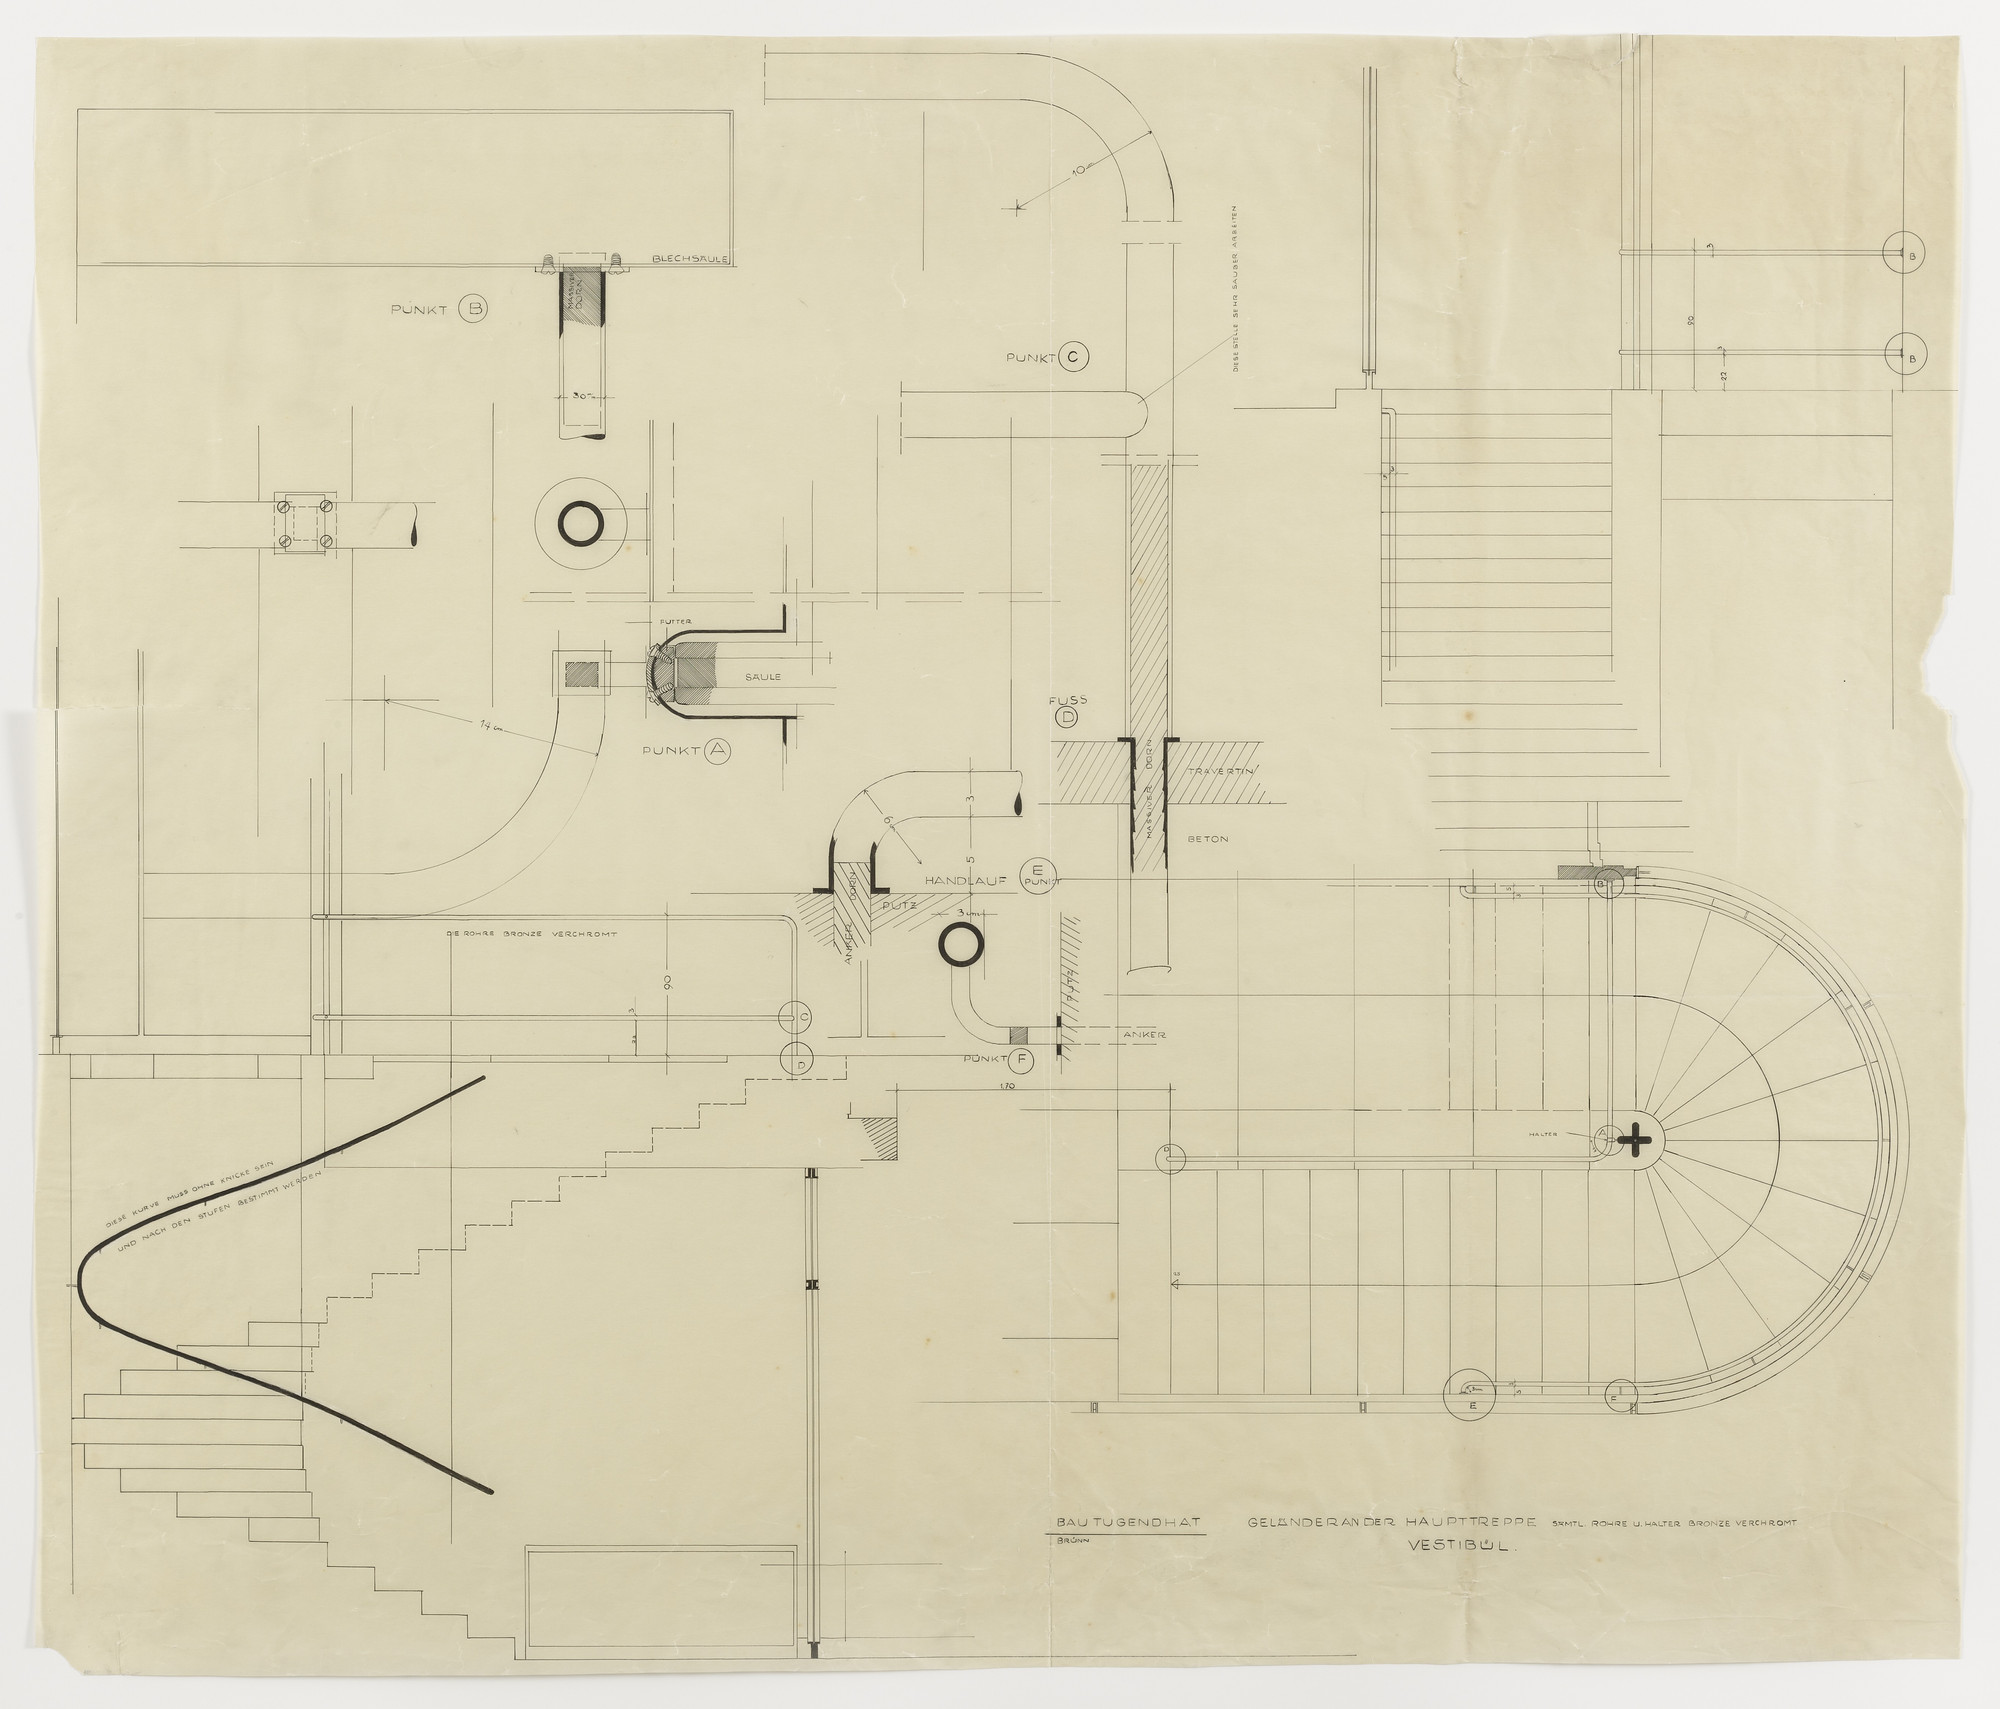 Ludwig Mies van der Rohe. Tugendhat House, Brno, Czech Republic, Plan, elevations, and sections. 1928-1930